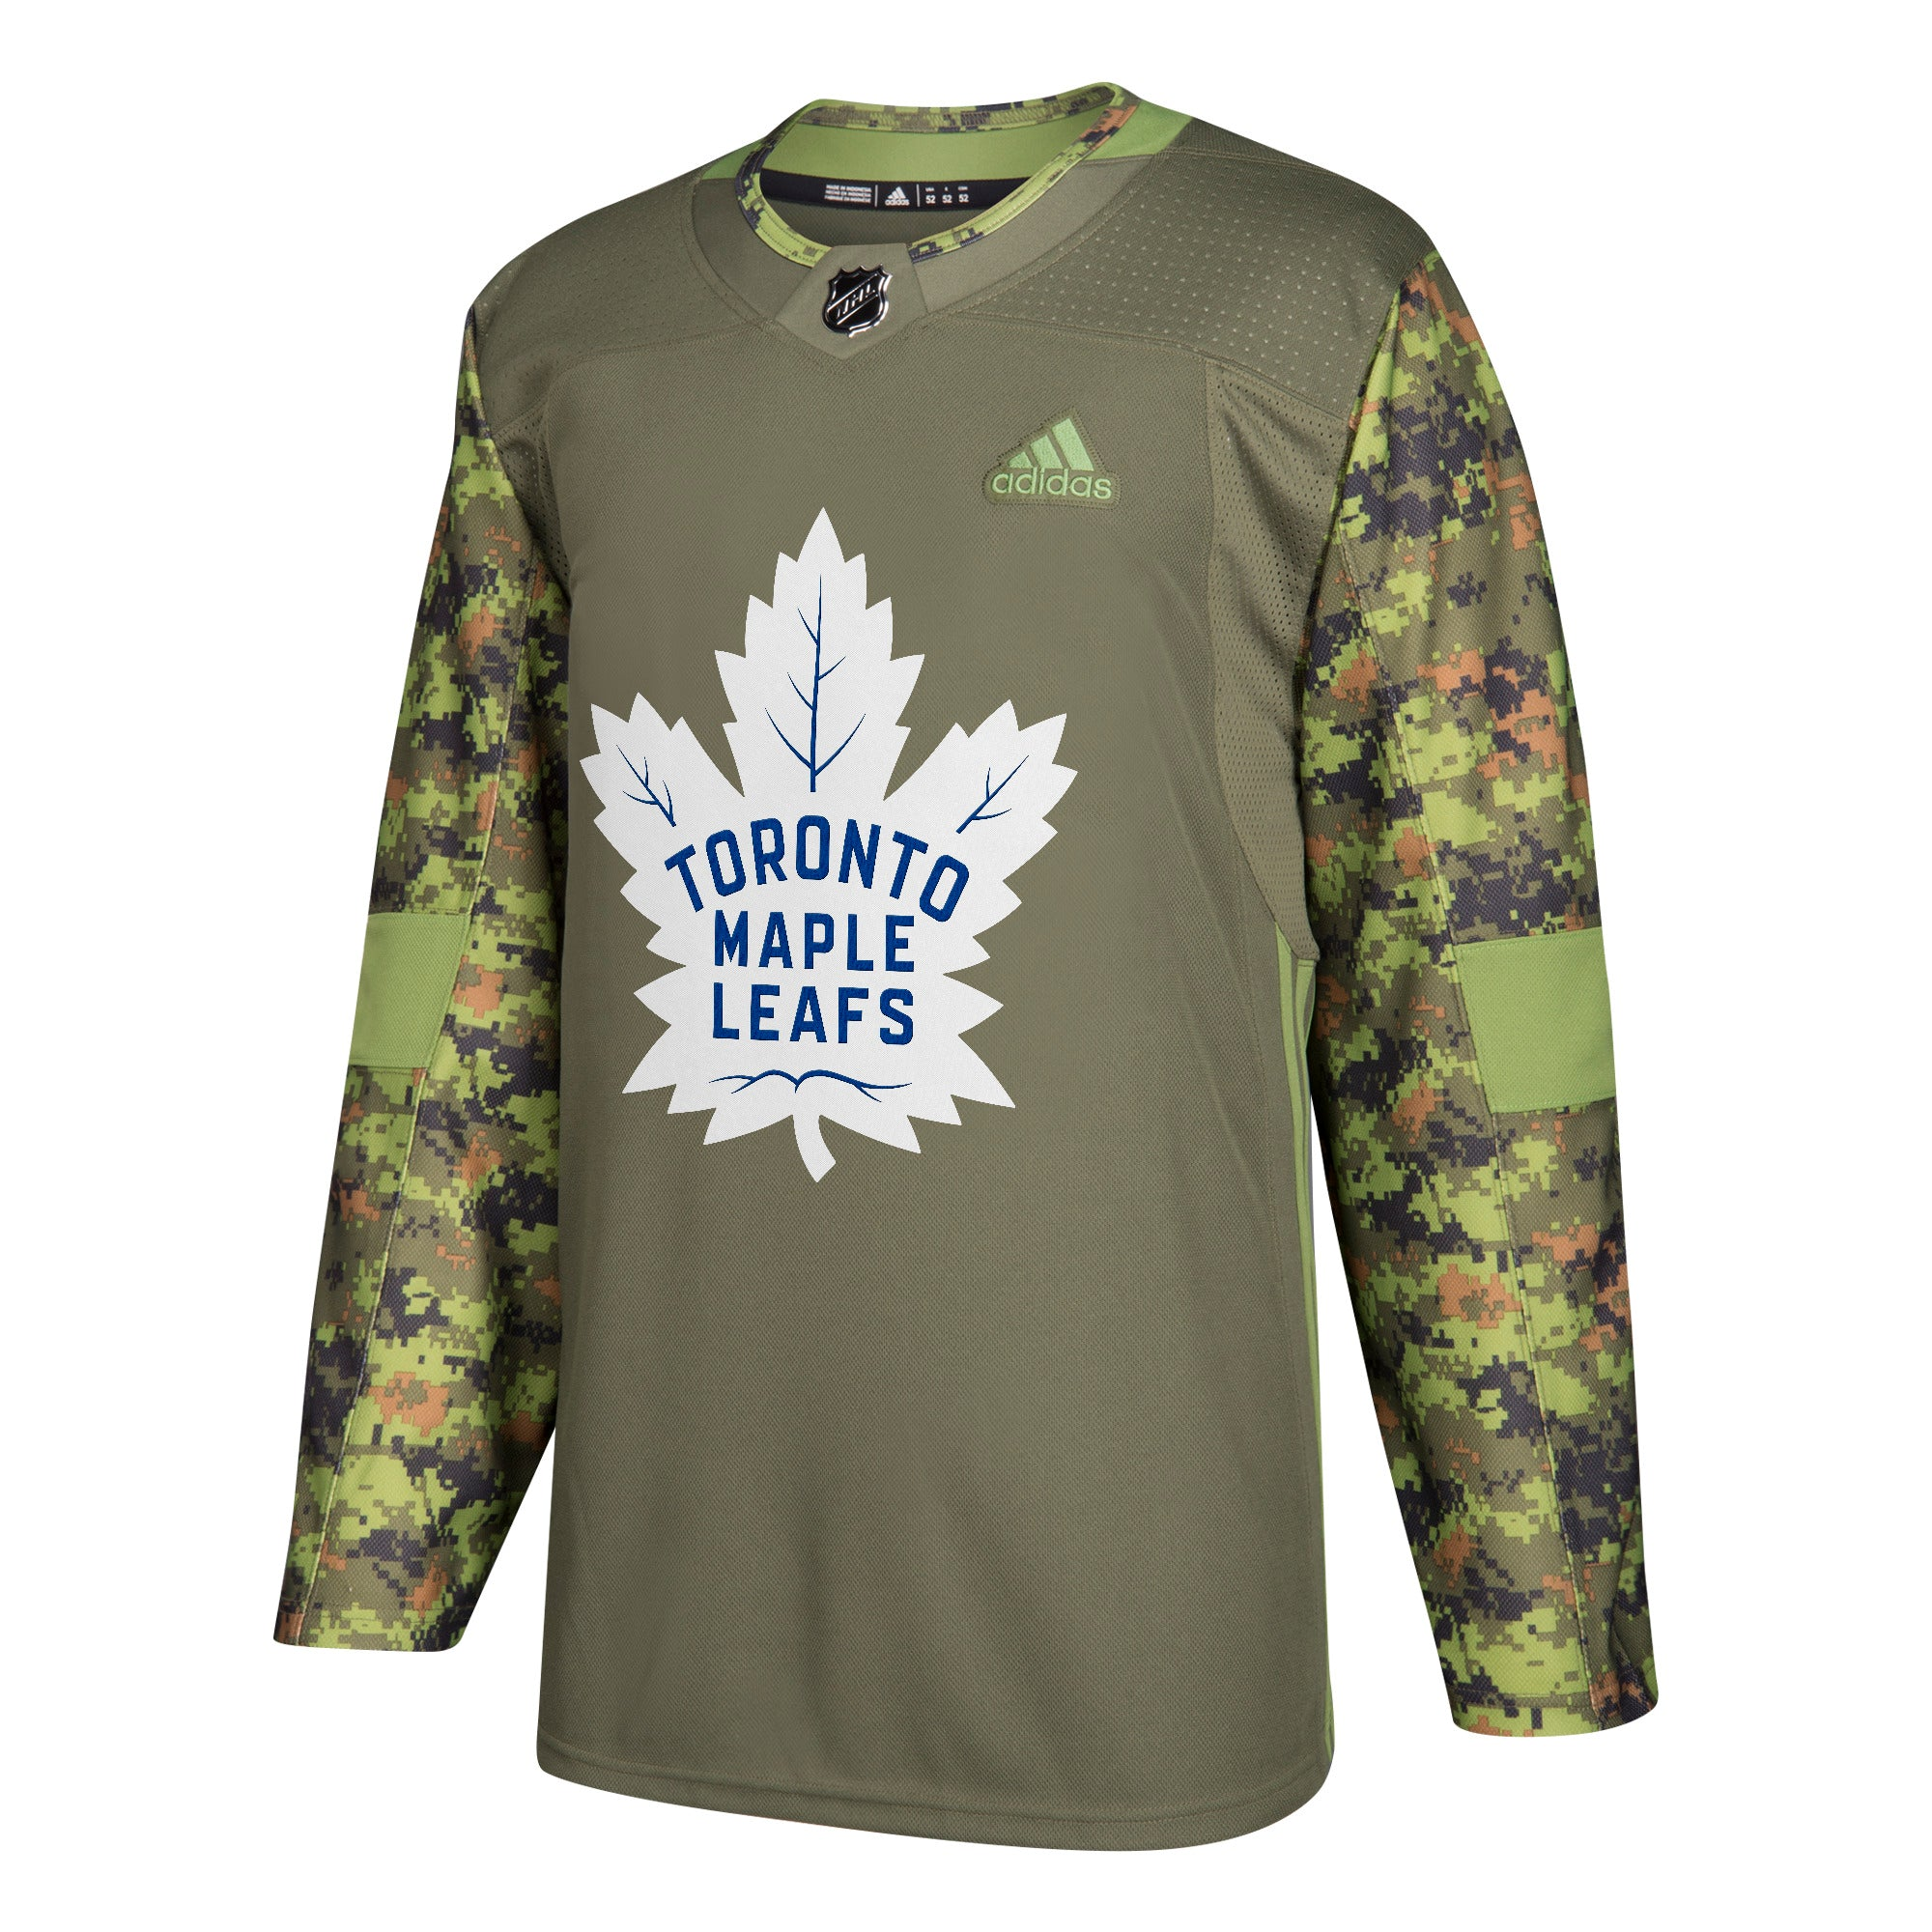 Jersey Hockey Camo Camo Hockey Hockey Jersey Jersey Jersey Camo Hockey Camo|High 50 Biggest Moments In Sports History (50